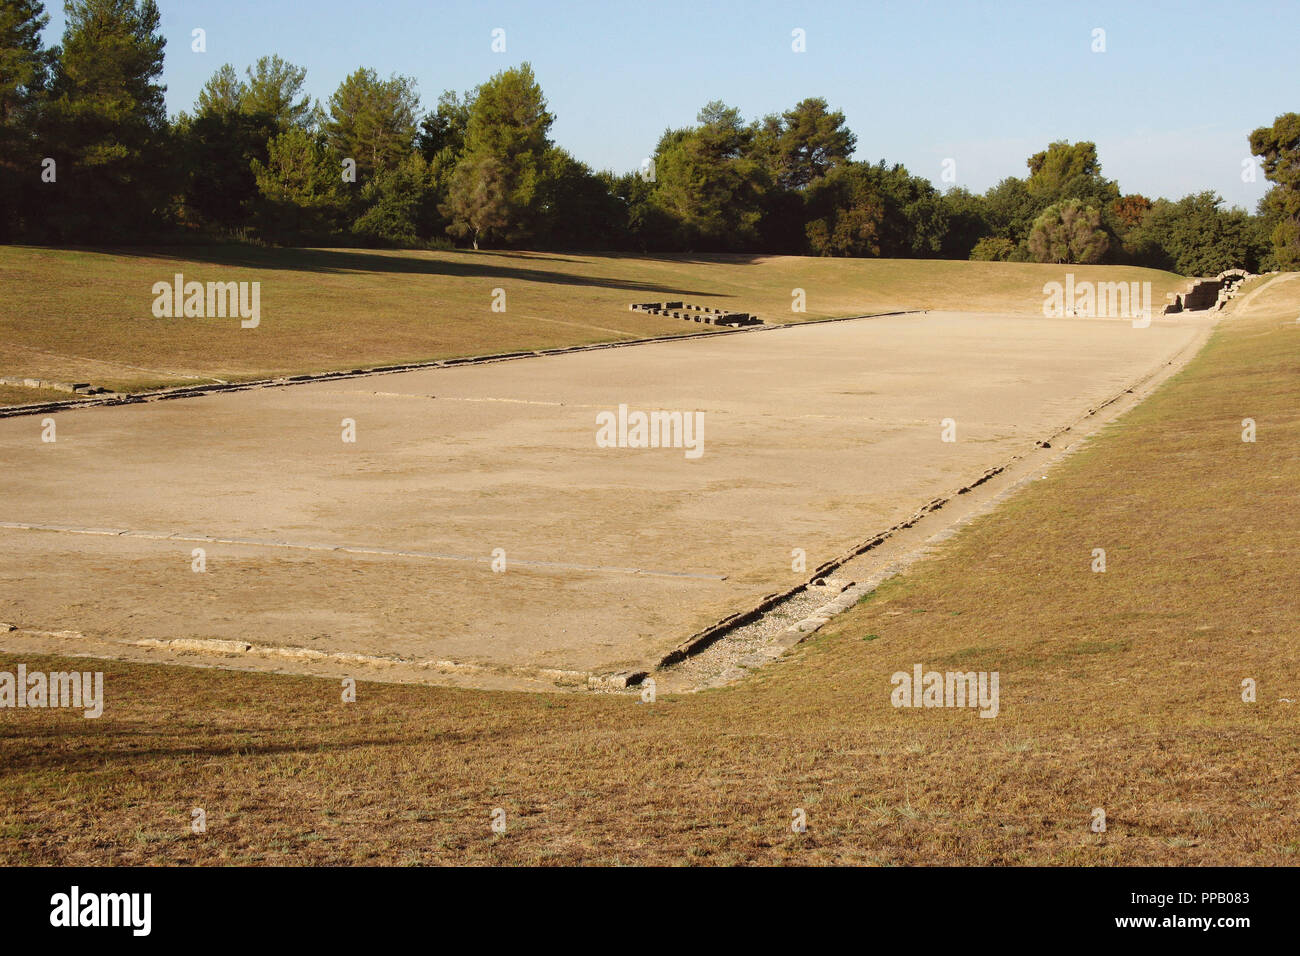 Greek Art. Sanctuary of Olympia. Panorama of the ancient Olympic Stadium. The east of archaelogical site.  Elis. Peloponesse. Greece. Europe. - Stock Image